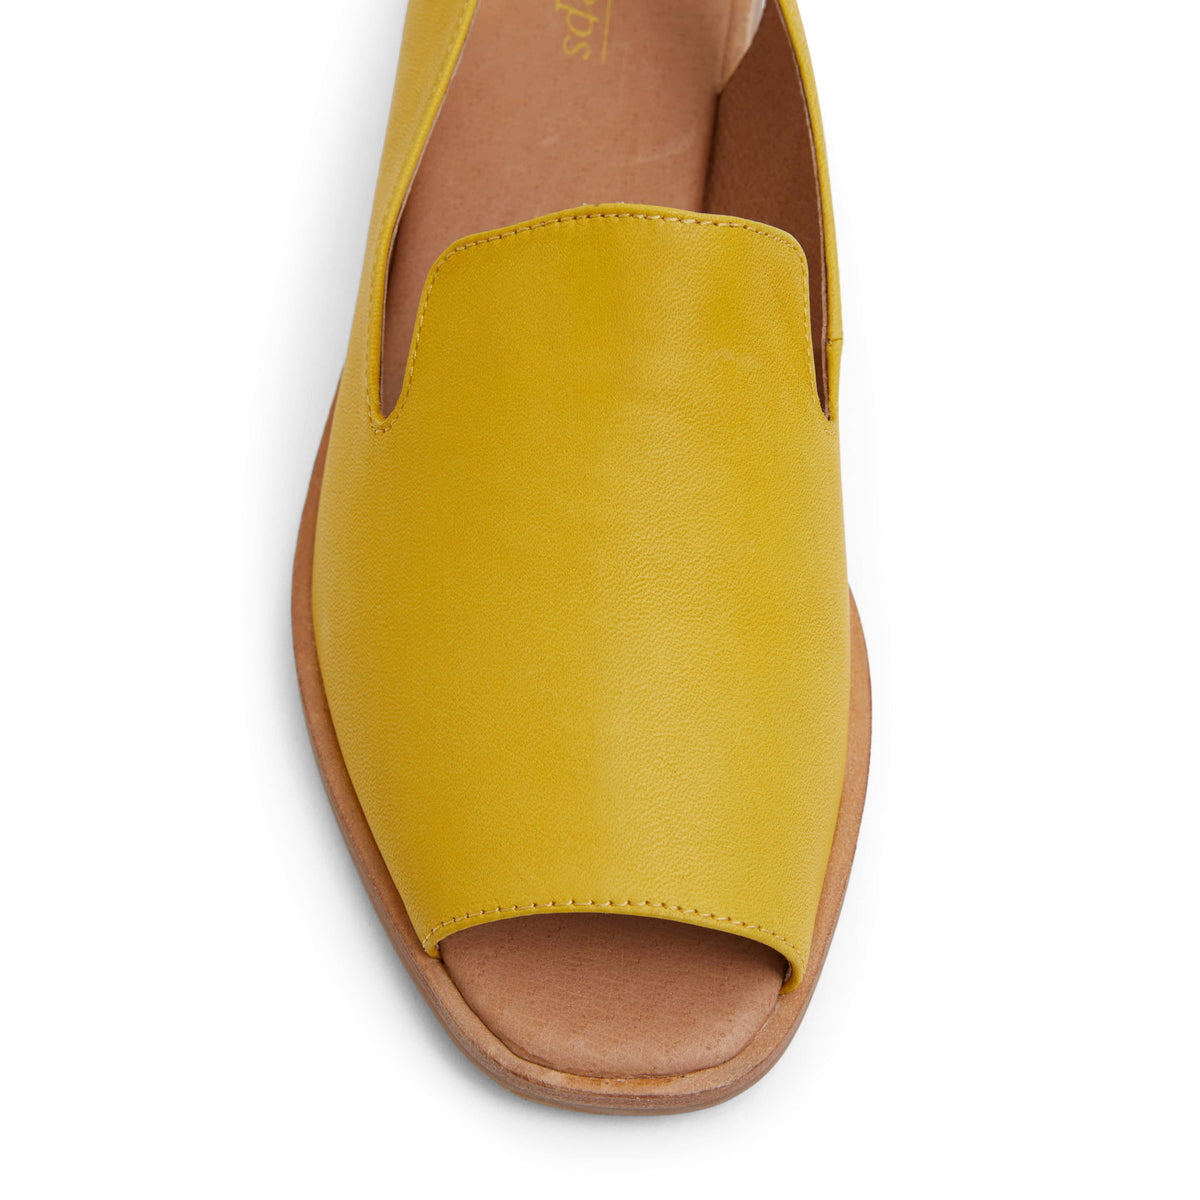 Delaney Sandal in Mustard Leather